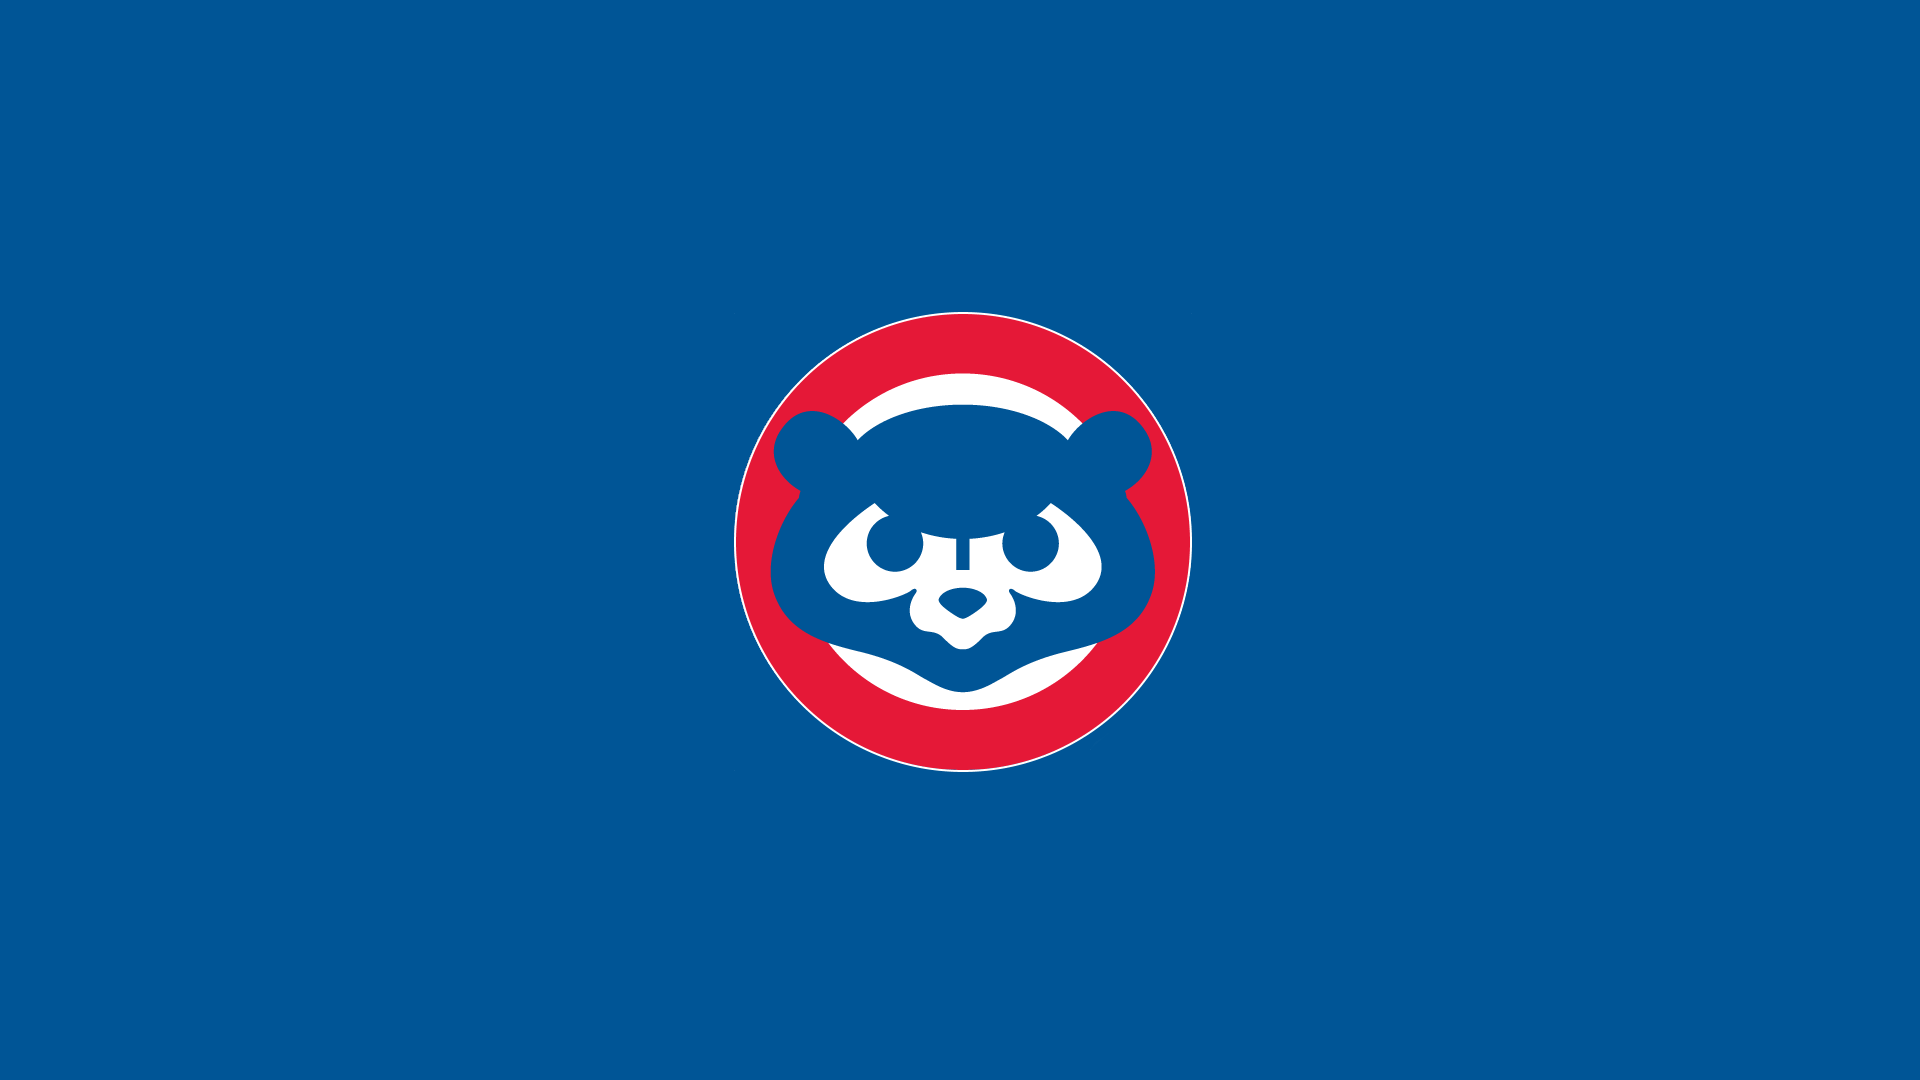 Cubs Wallpaper for your Desktop Chicago Cubs 1920x1080